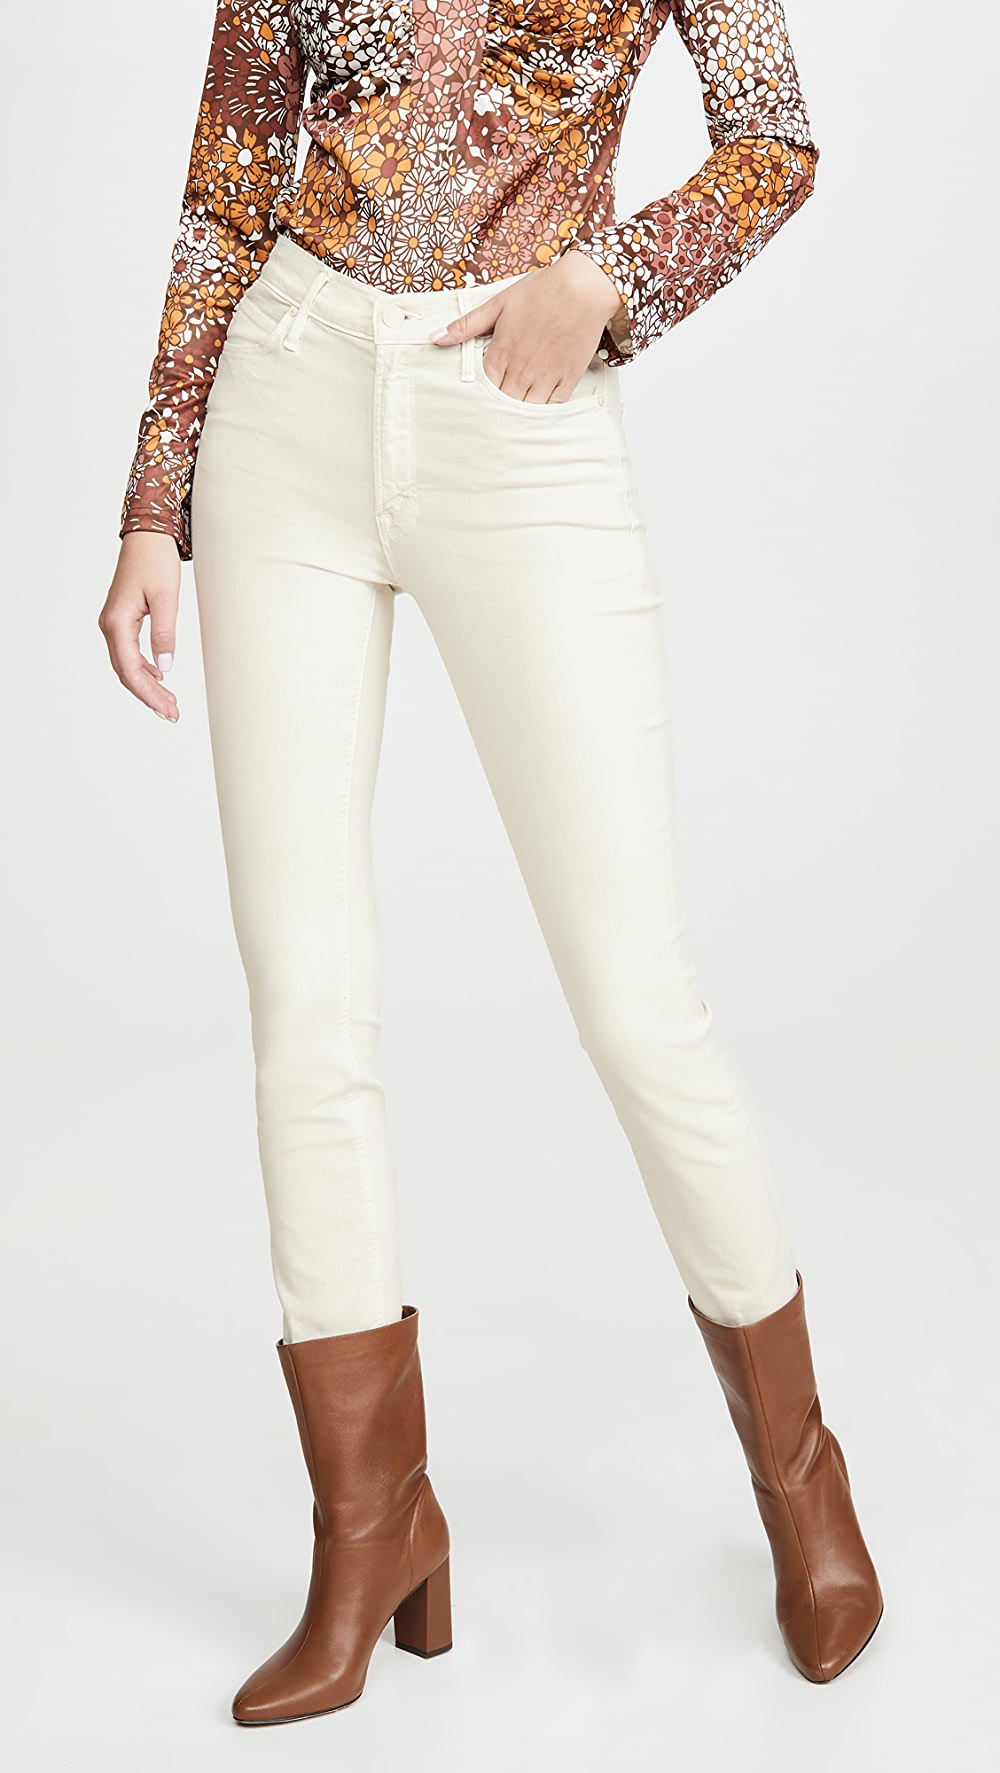 Humble Mother - The Mid Rise Dazzler Ankle Jeans Delaying Senility